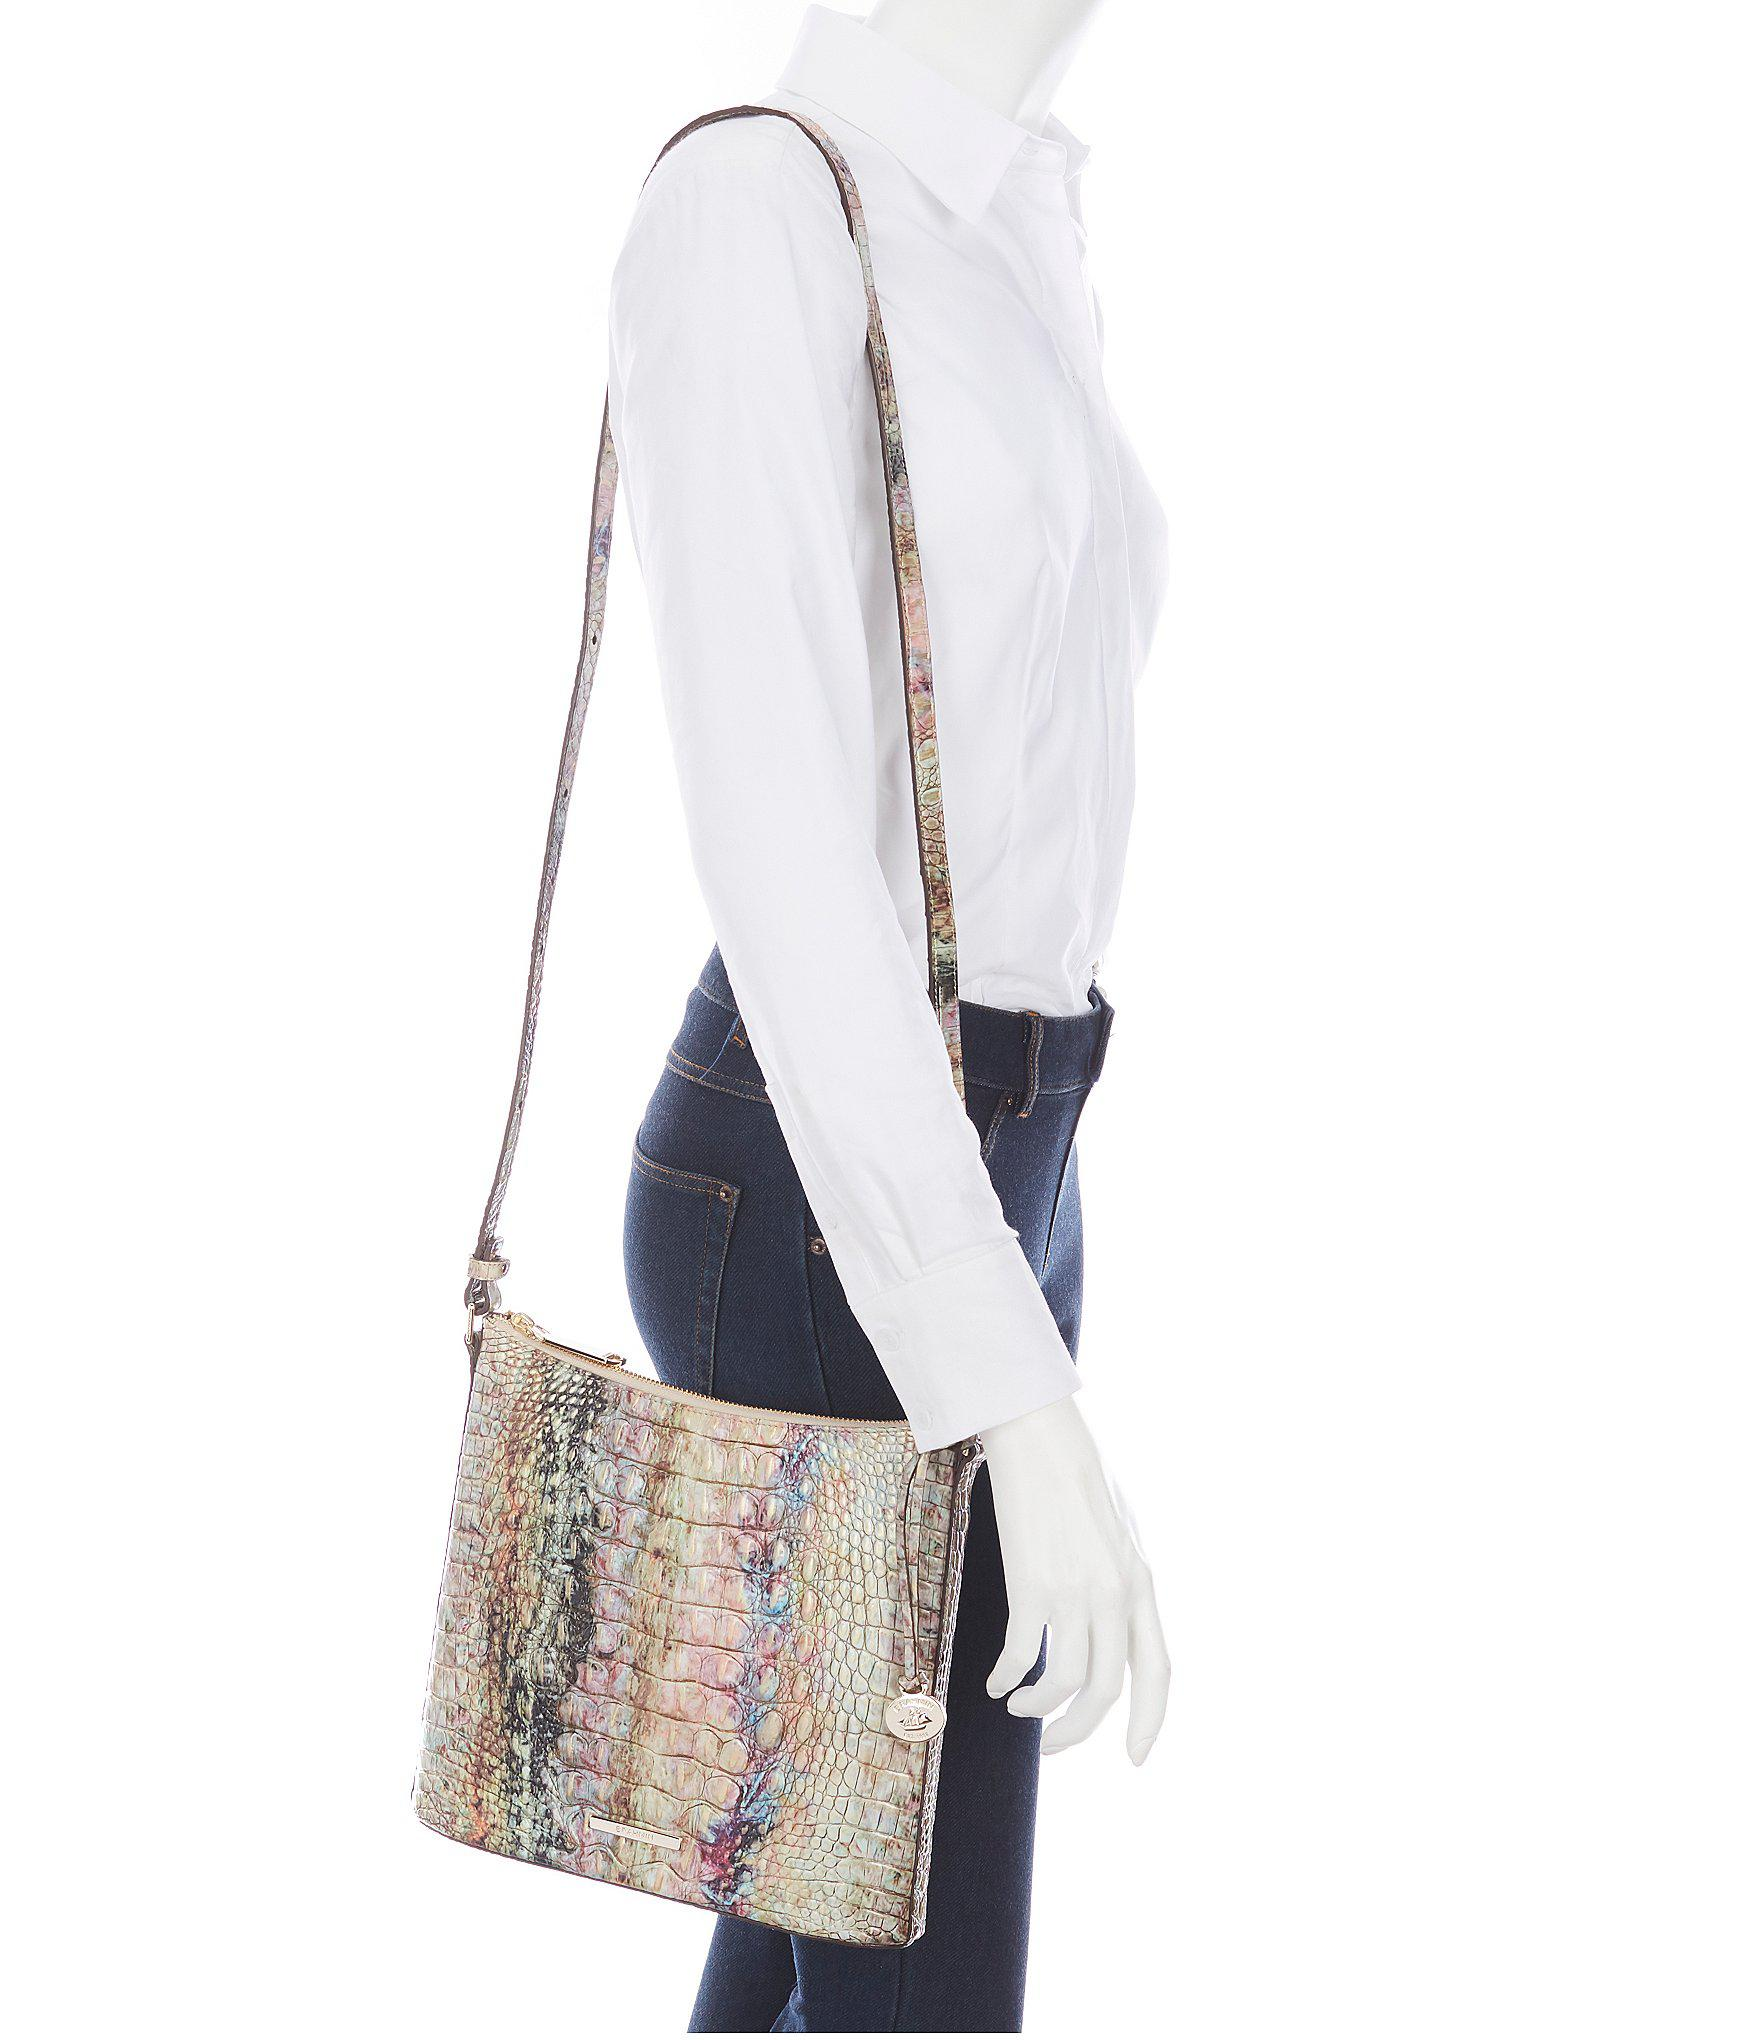 37f414cacc Lyst - Brahmin Melbourne Collection Katie Cross-body Bag